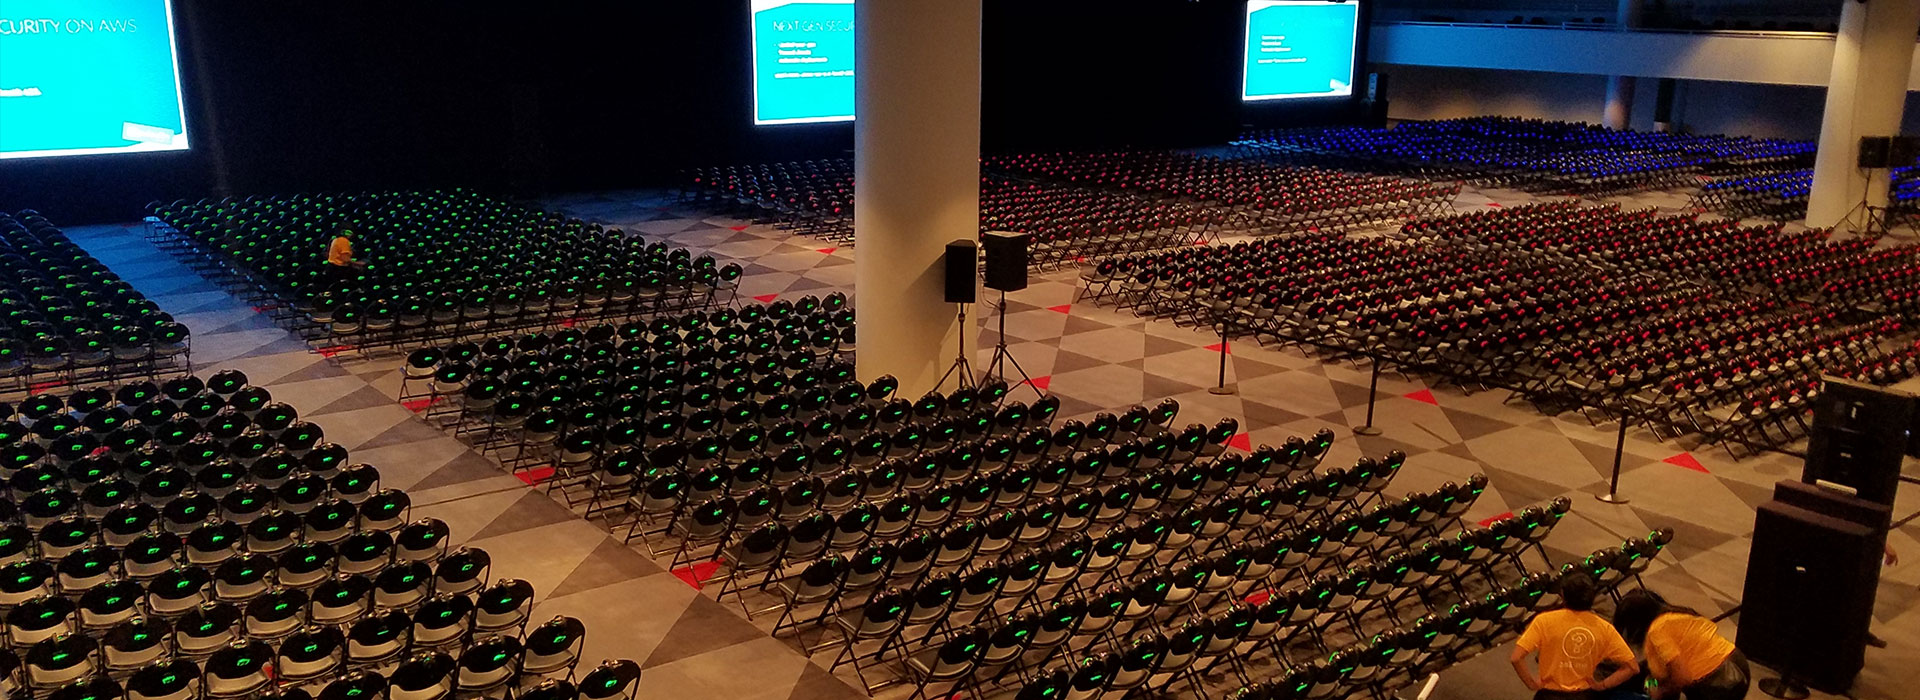 thousands of seats with headphones